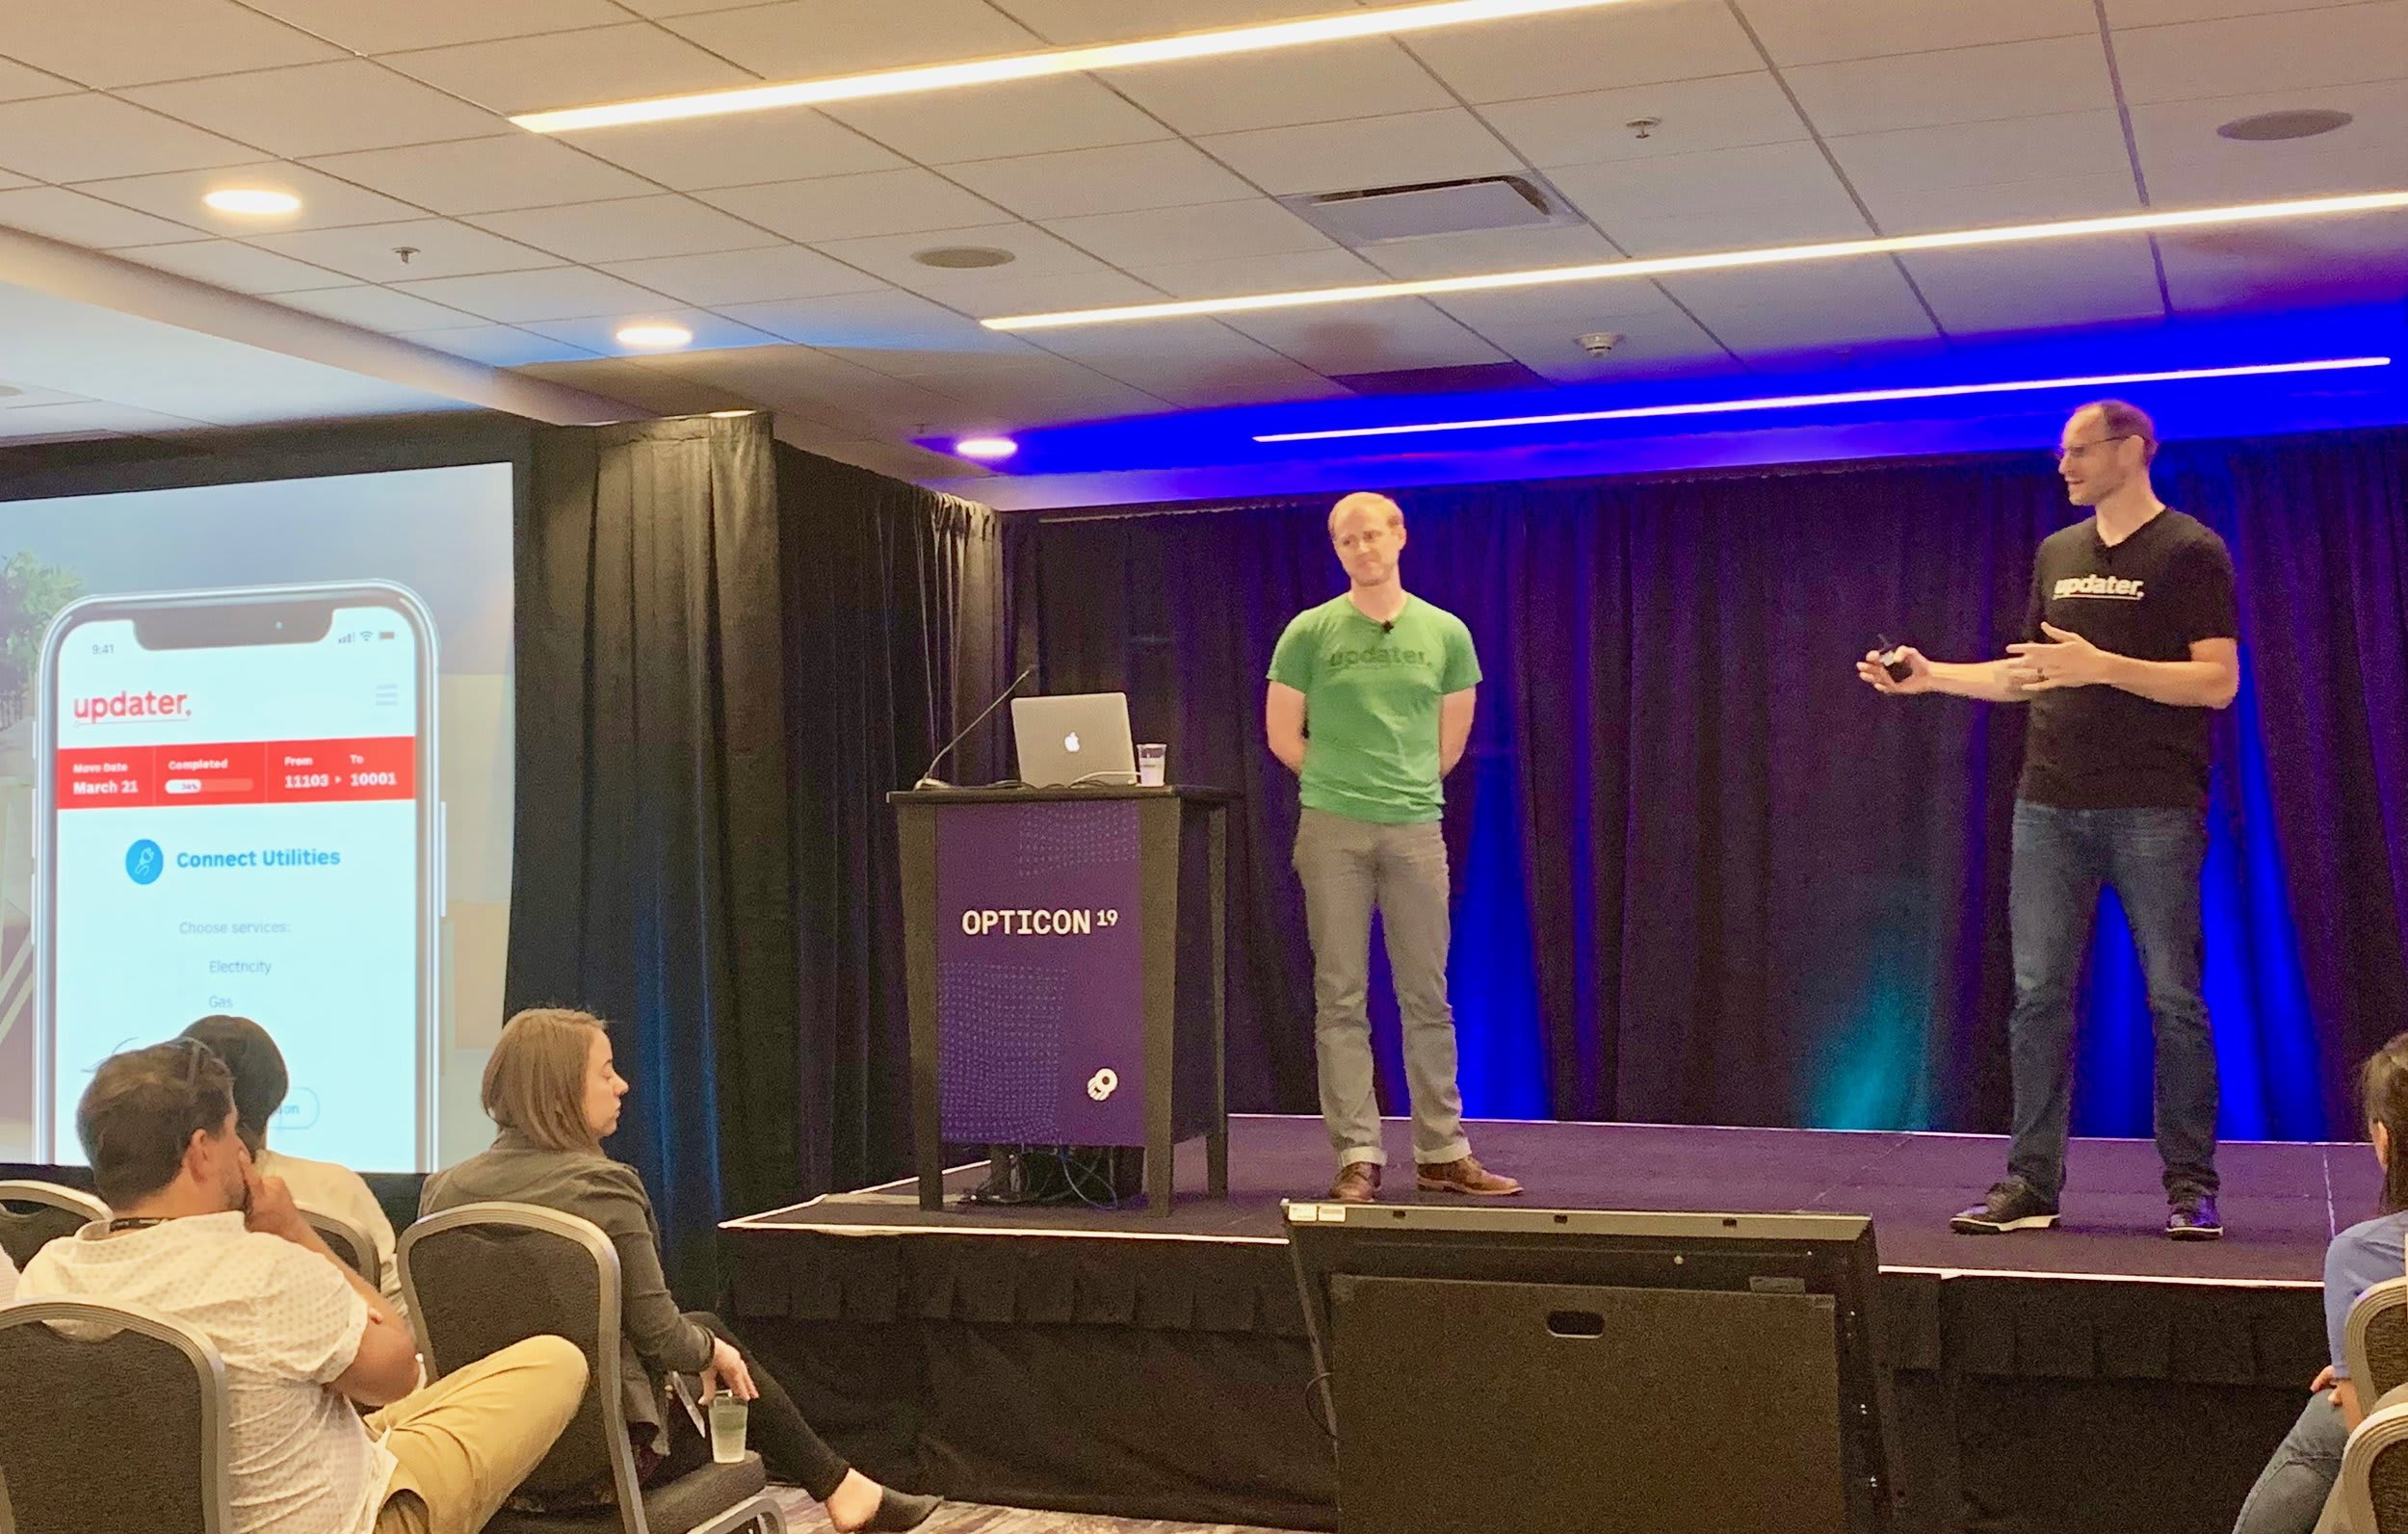 Updater at Opticon: How to Overcome Challenges and Triple Experiment Velocity